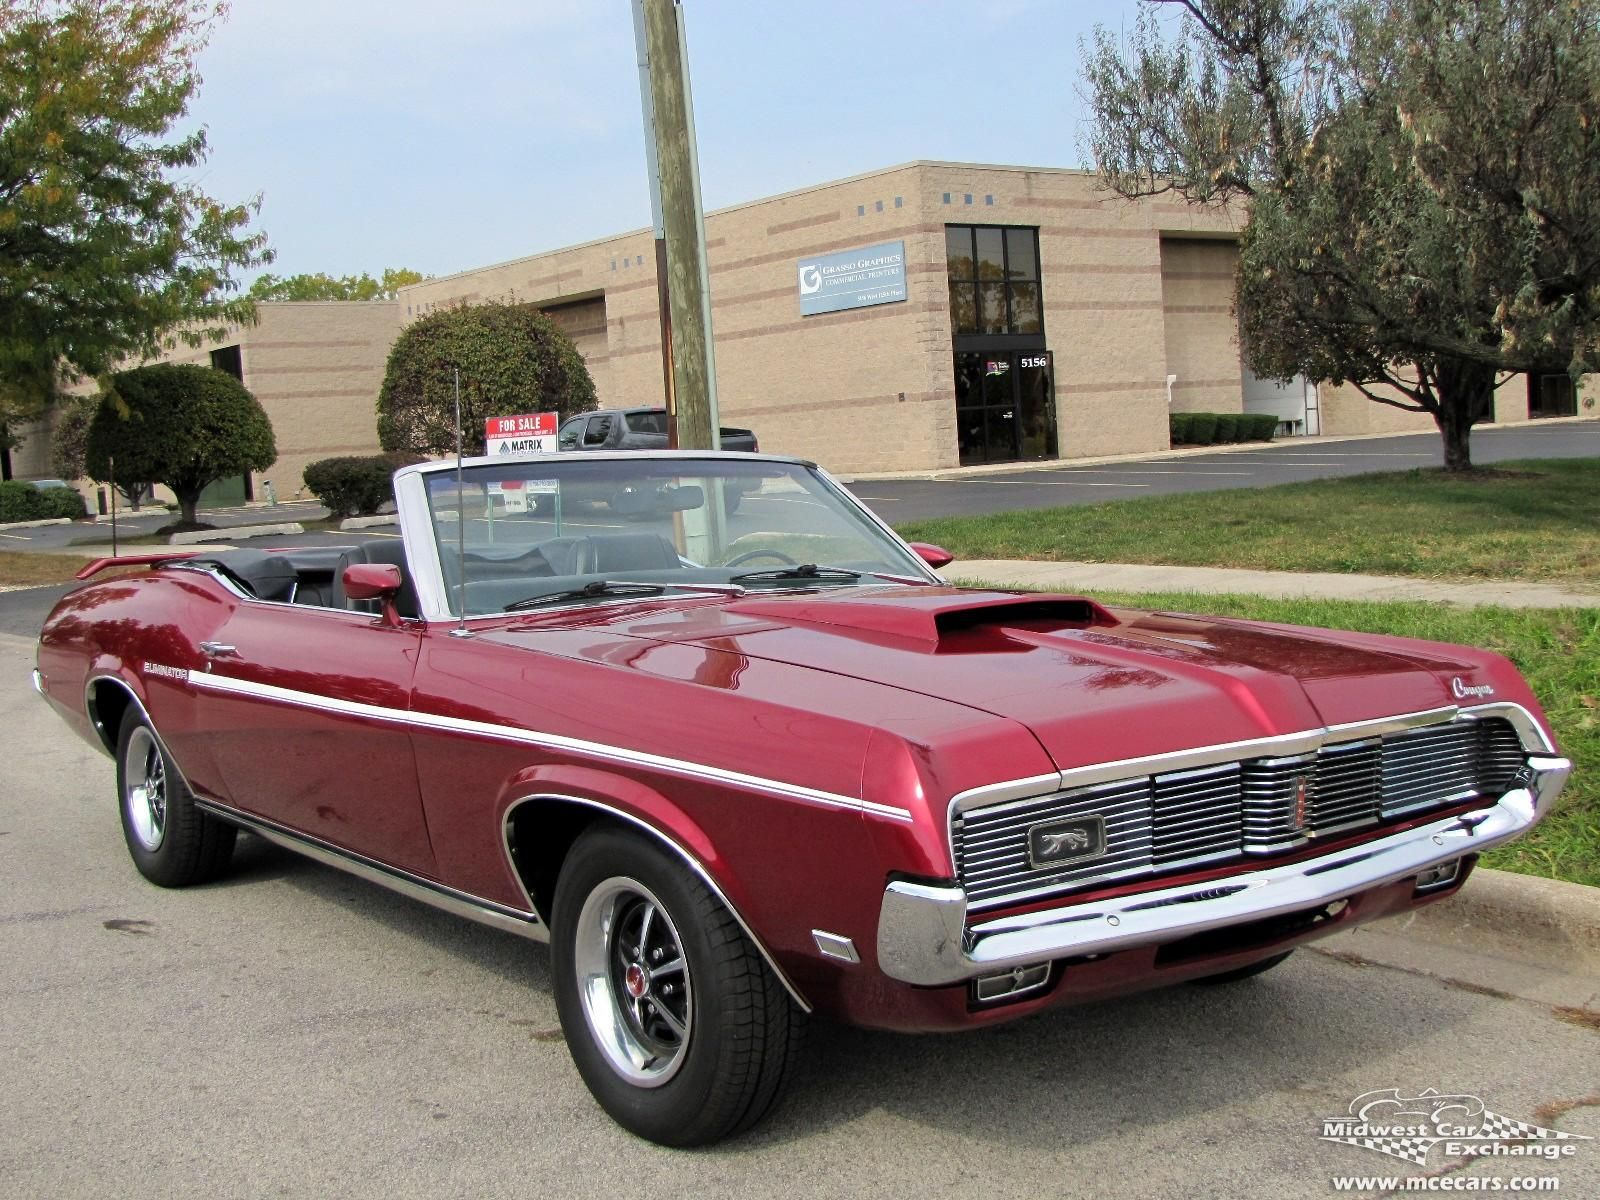 1969 Mercury Cougar XR 7 Convertible     Dream Cars   Pinterest     1969 Mercury Cougar XR 7 Convertible